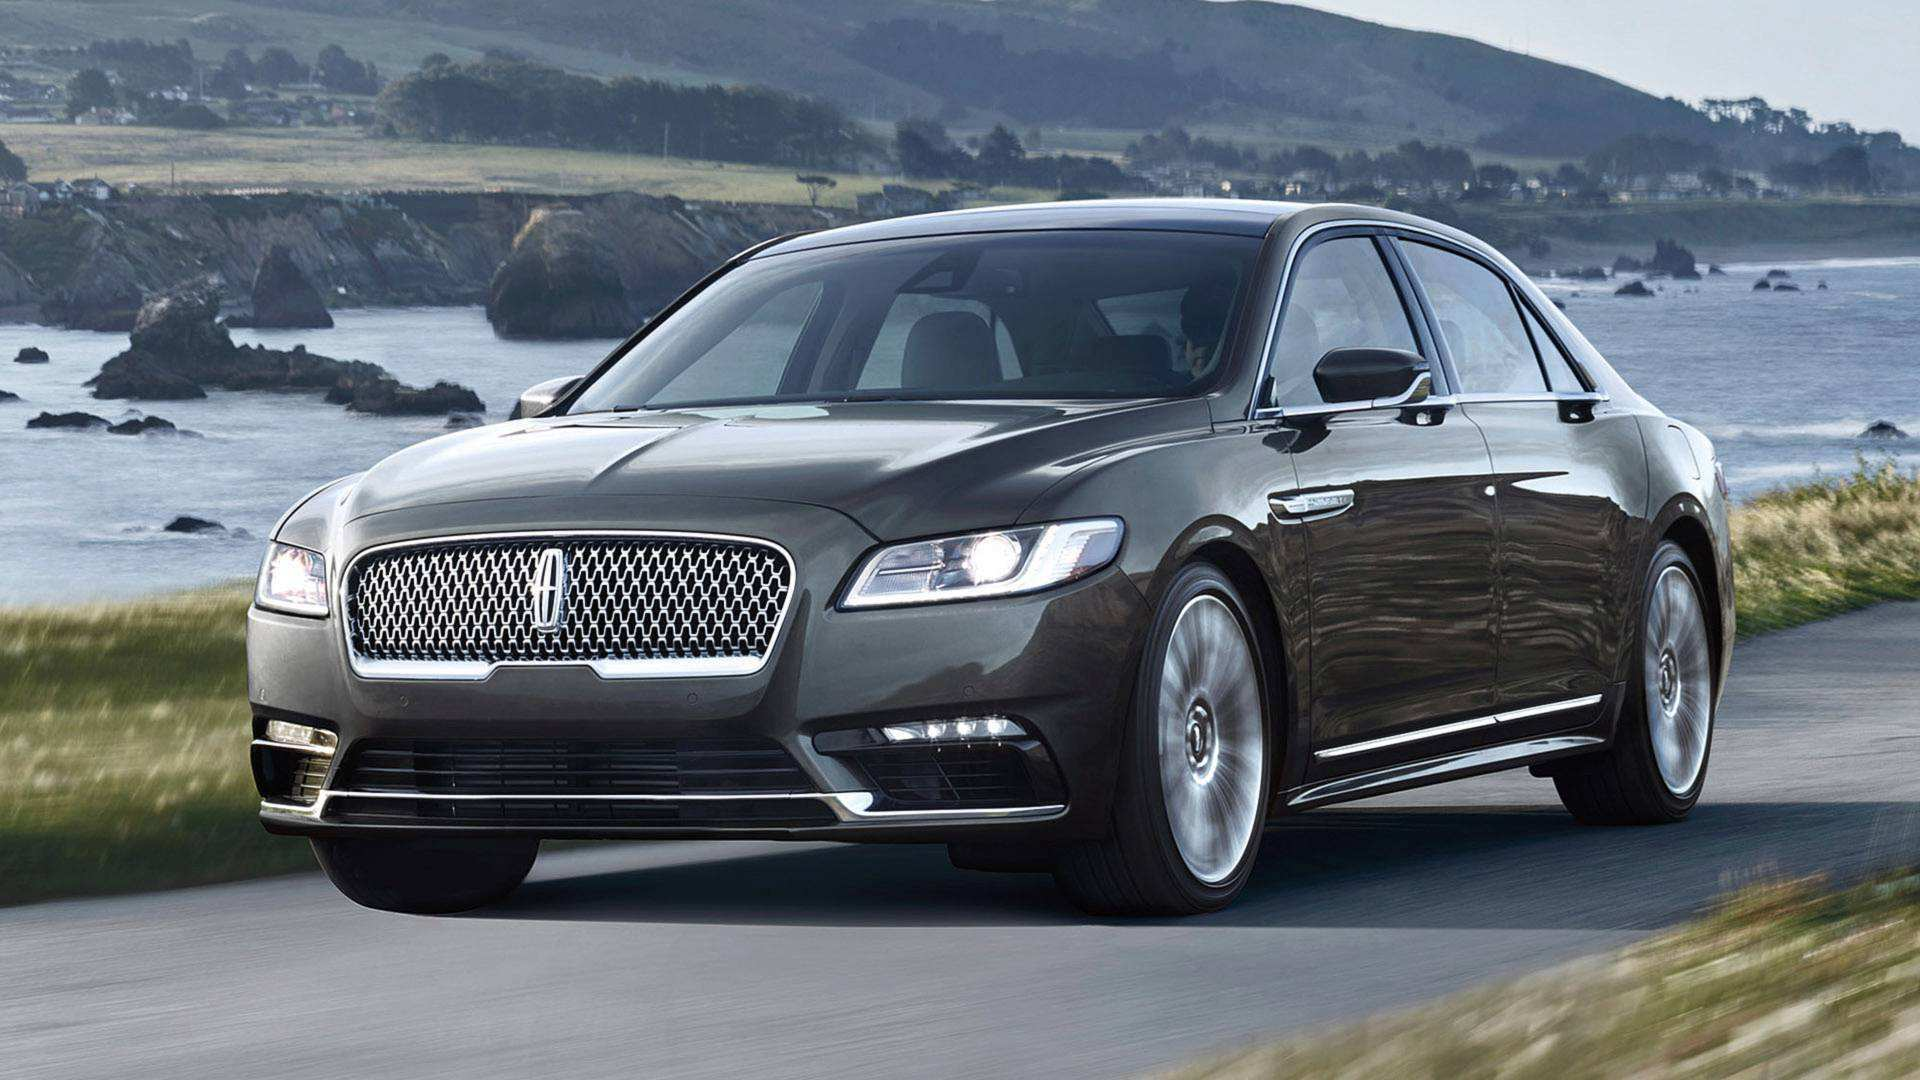 51 A 2020 Lincoln Continental Speed Test